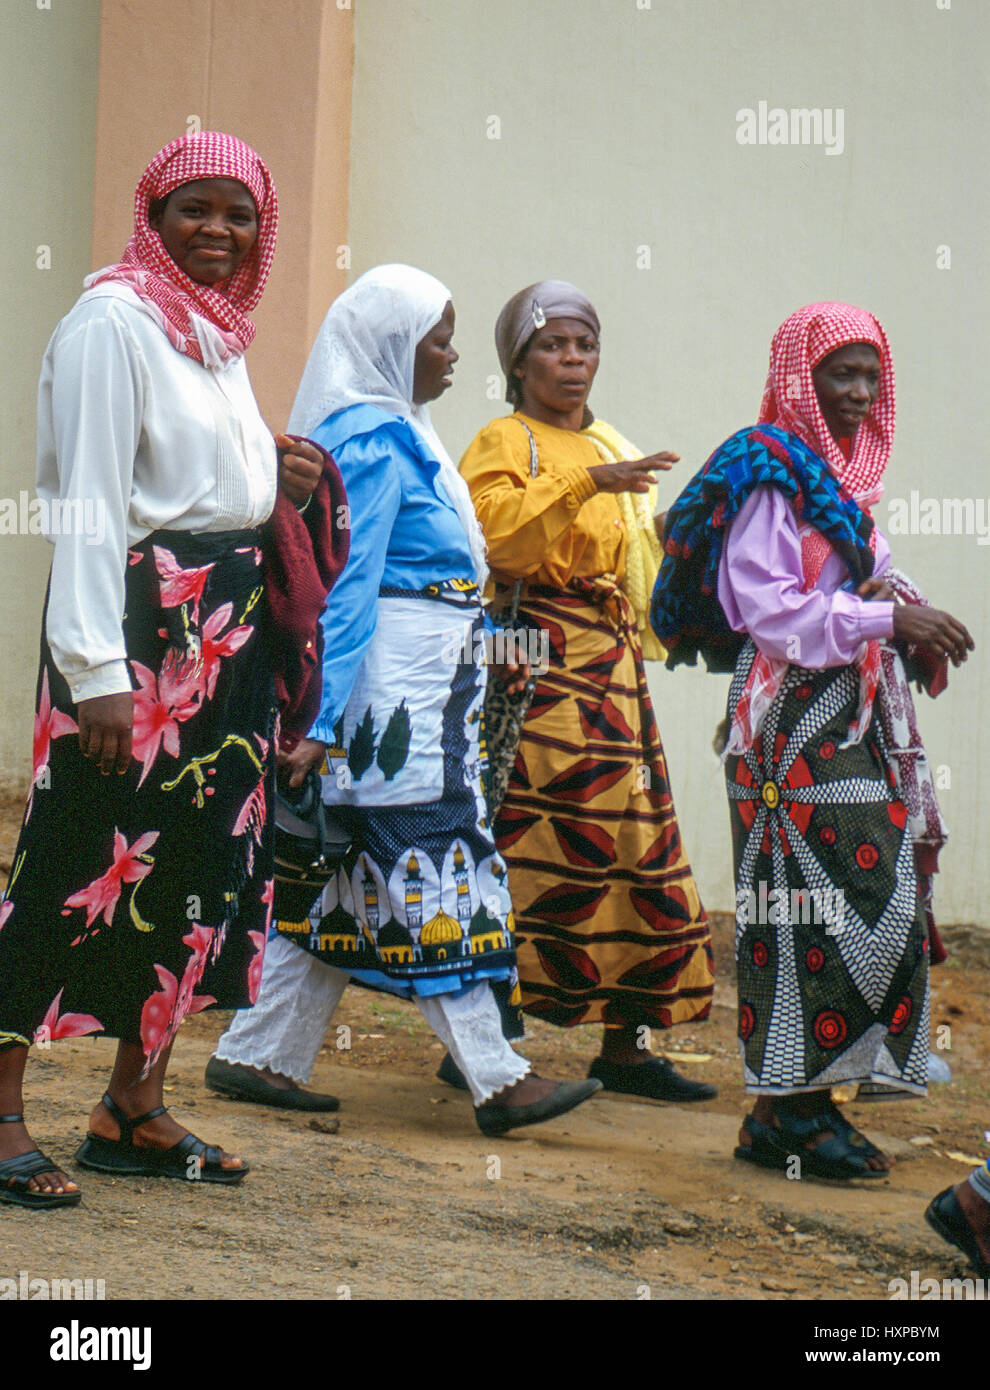 Muslim women in Blantyre, Malawi, Central Africa - Stock Image